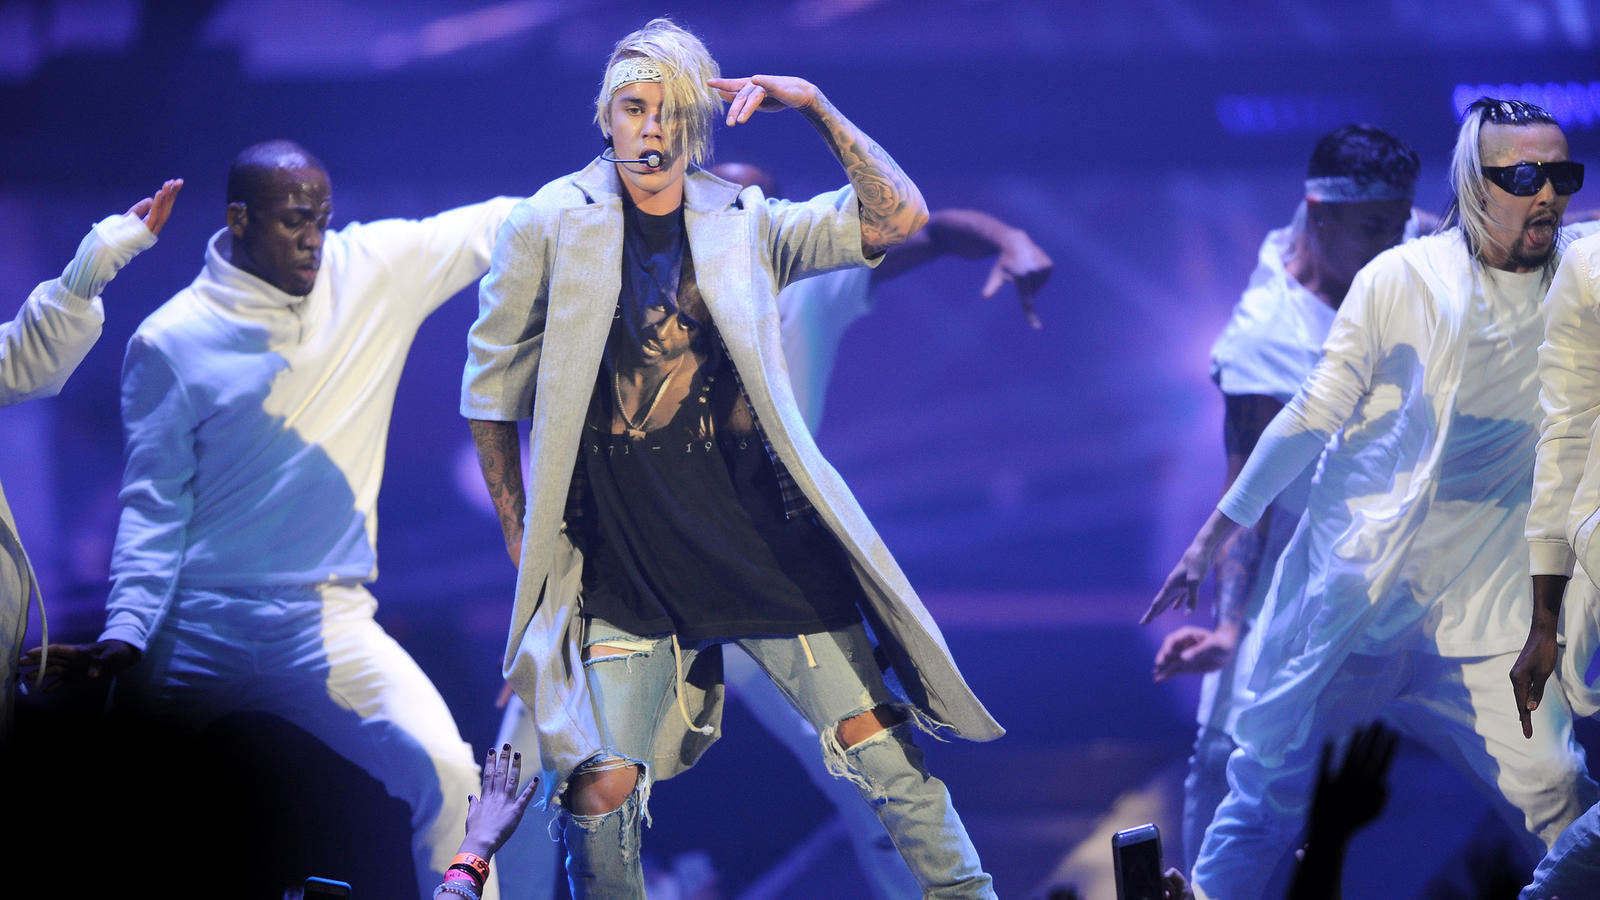 Justin Bieber and his backup dancers. (Christina House / For The Times)